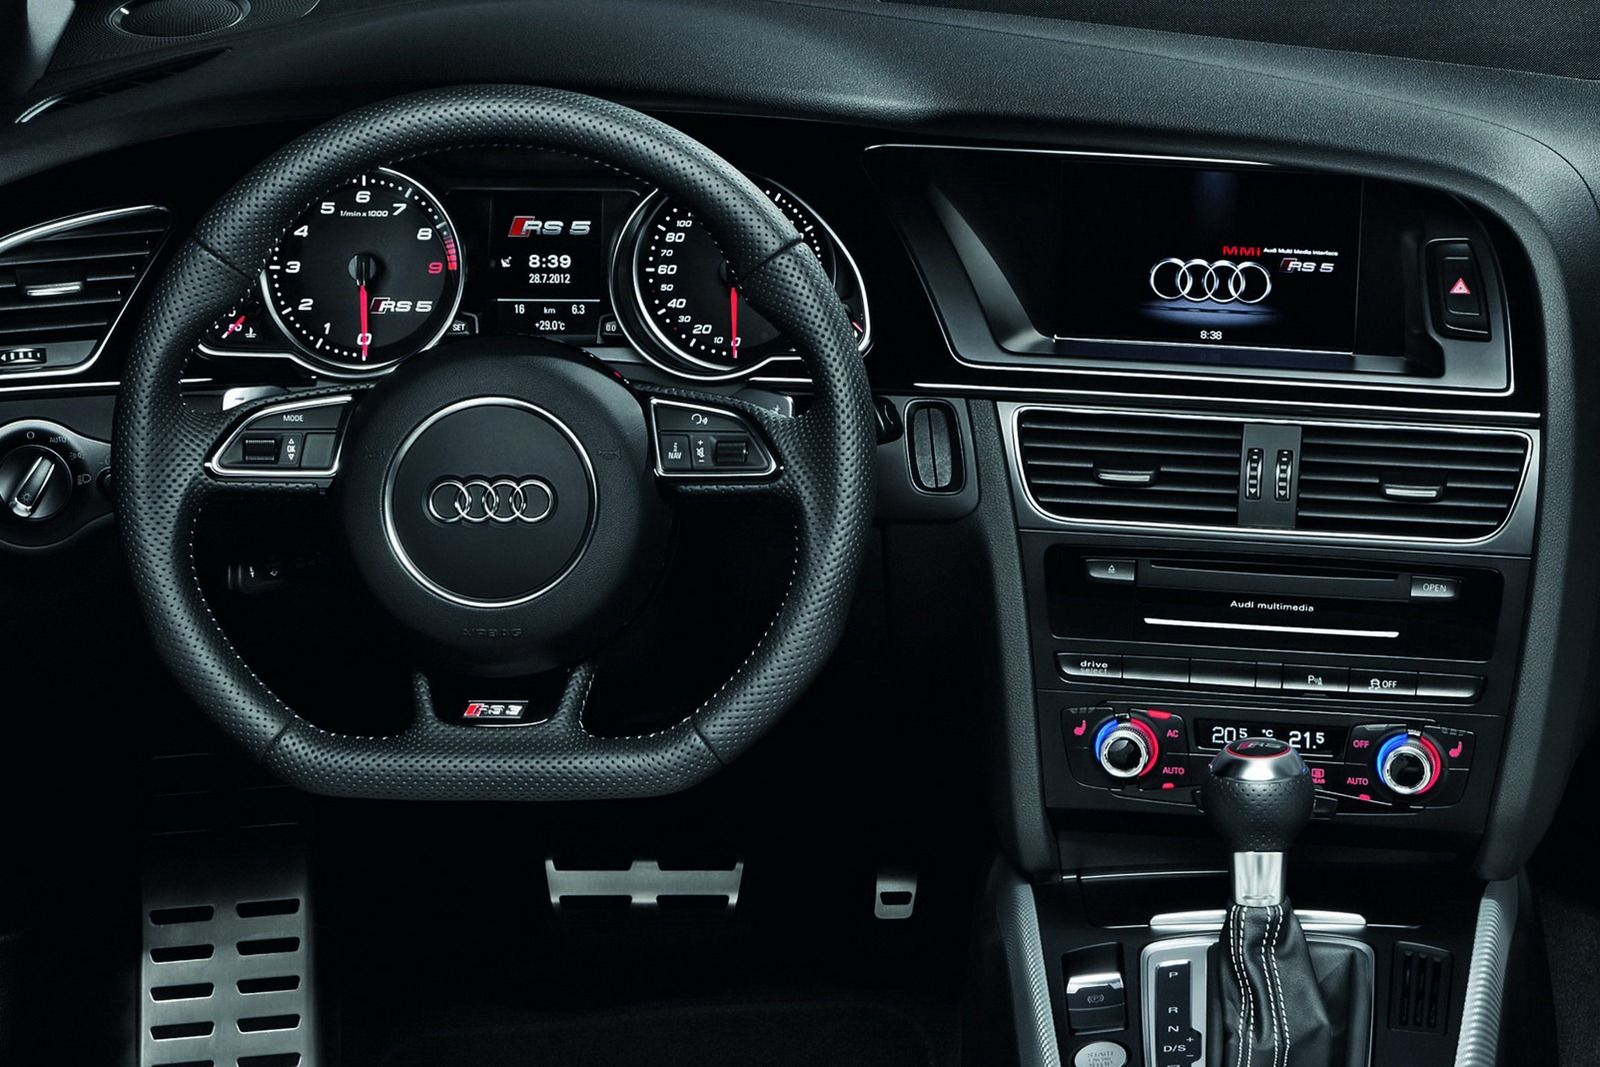 pictures audi rs5 inside | Audi RS5 Cabriolet convertible interior ...